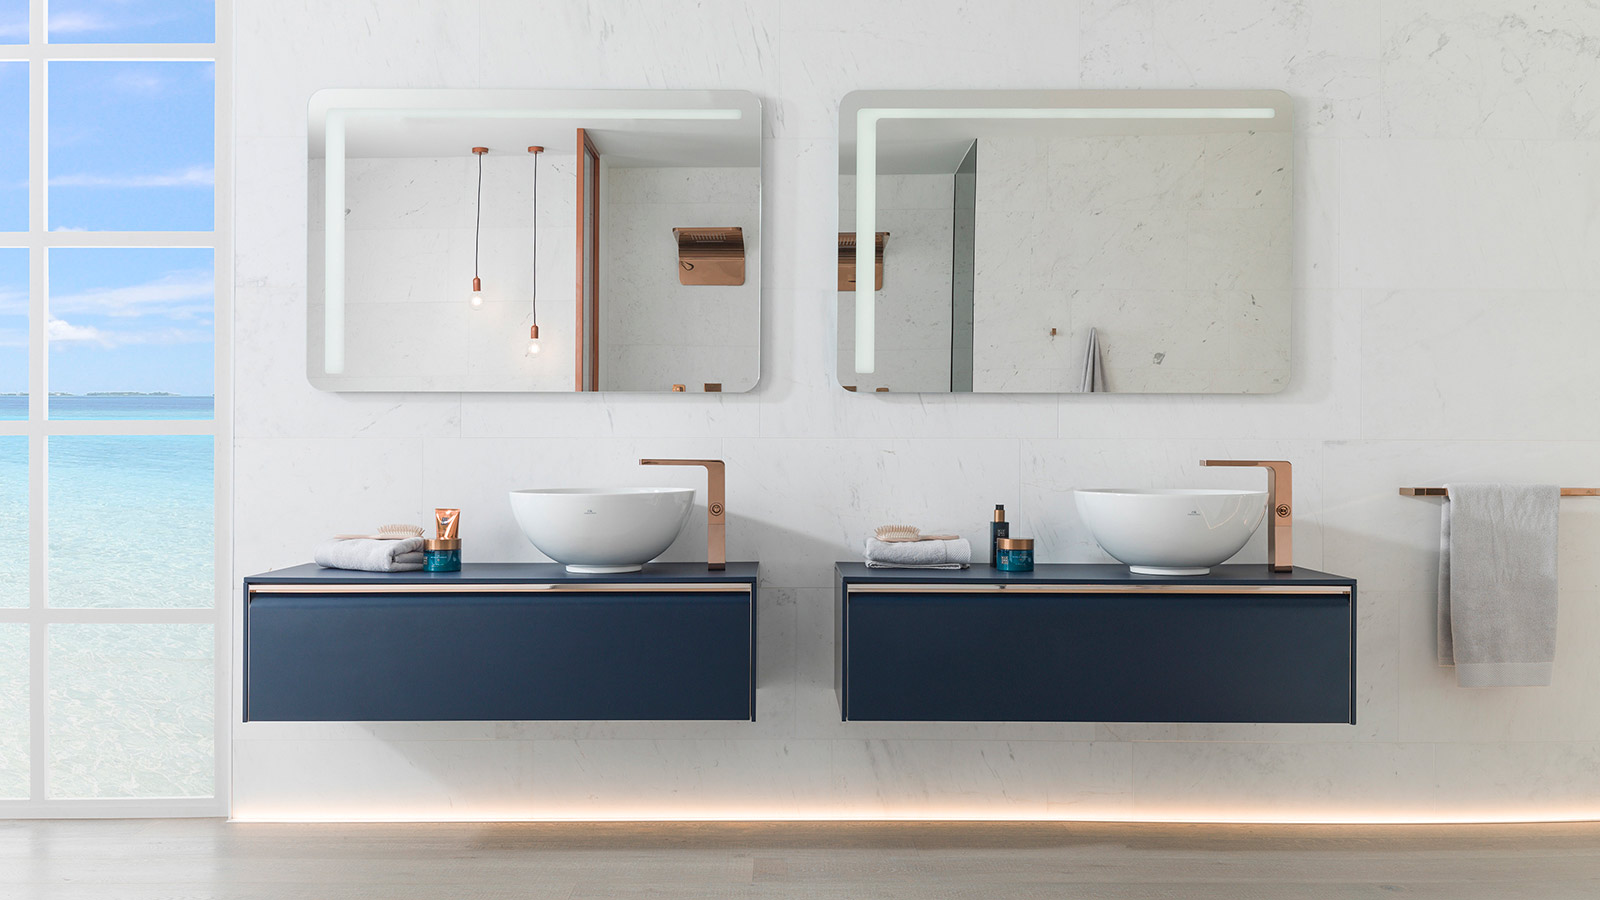 New finishes for the iconic Lounge collection by Simone Micheli: trend-setting bathrooms